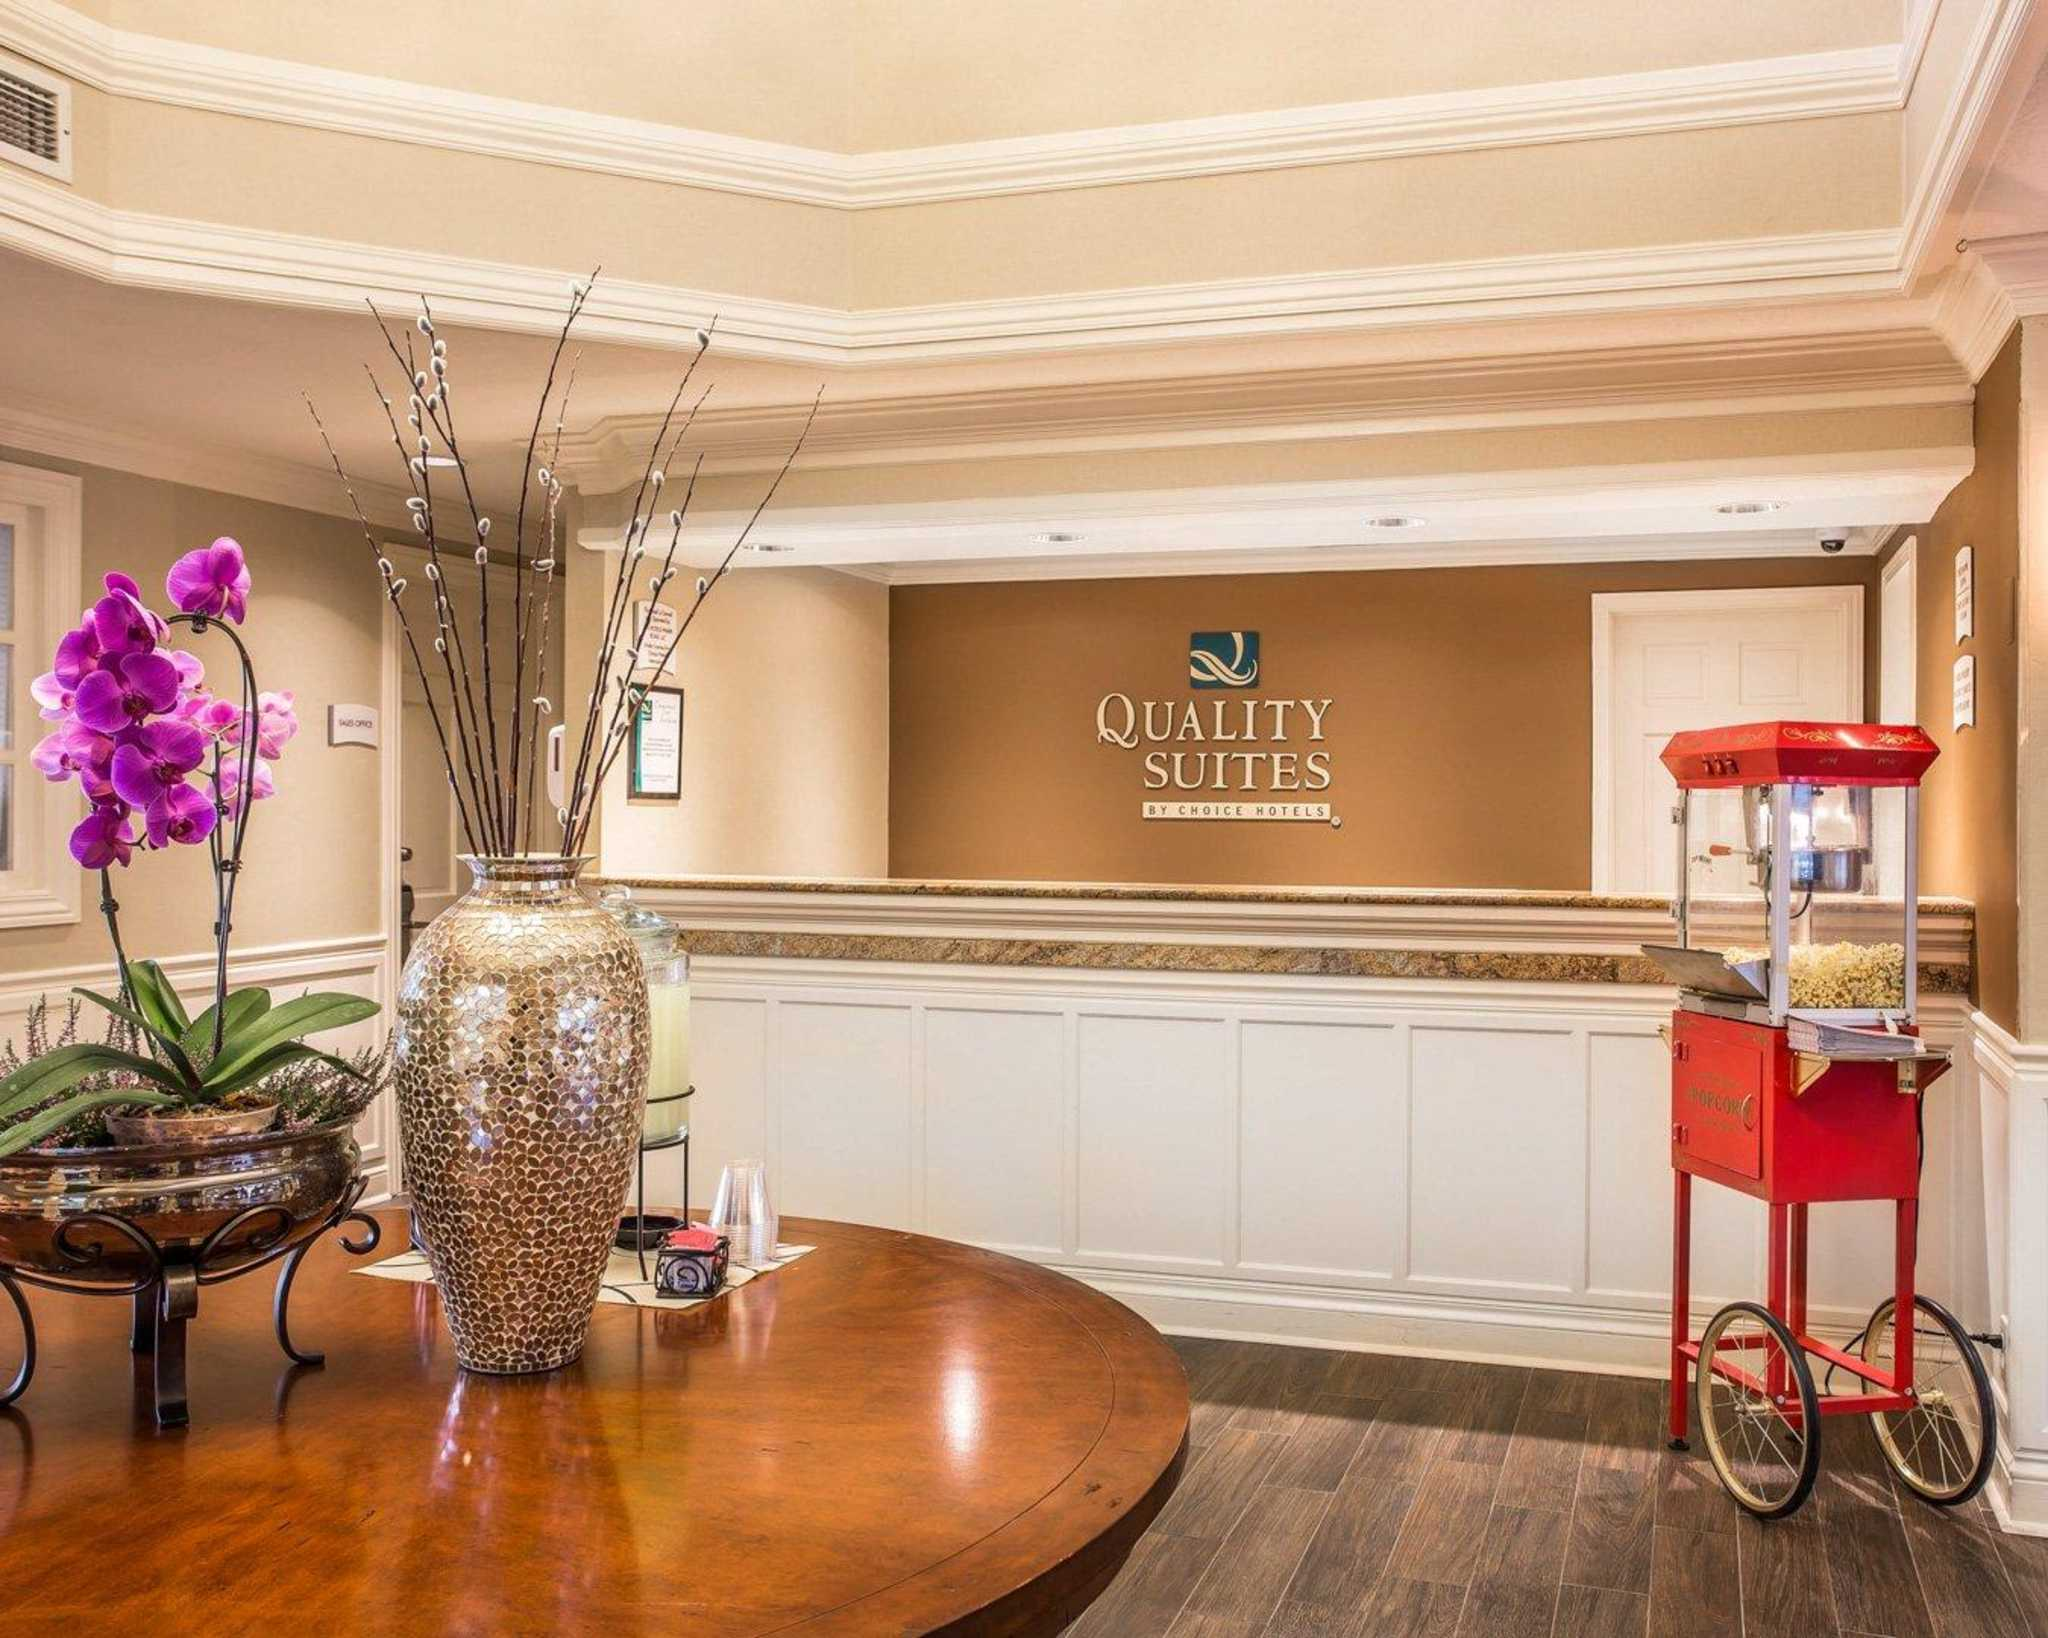 Quality Suites Buckhead Village image 4